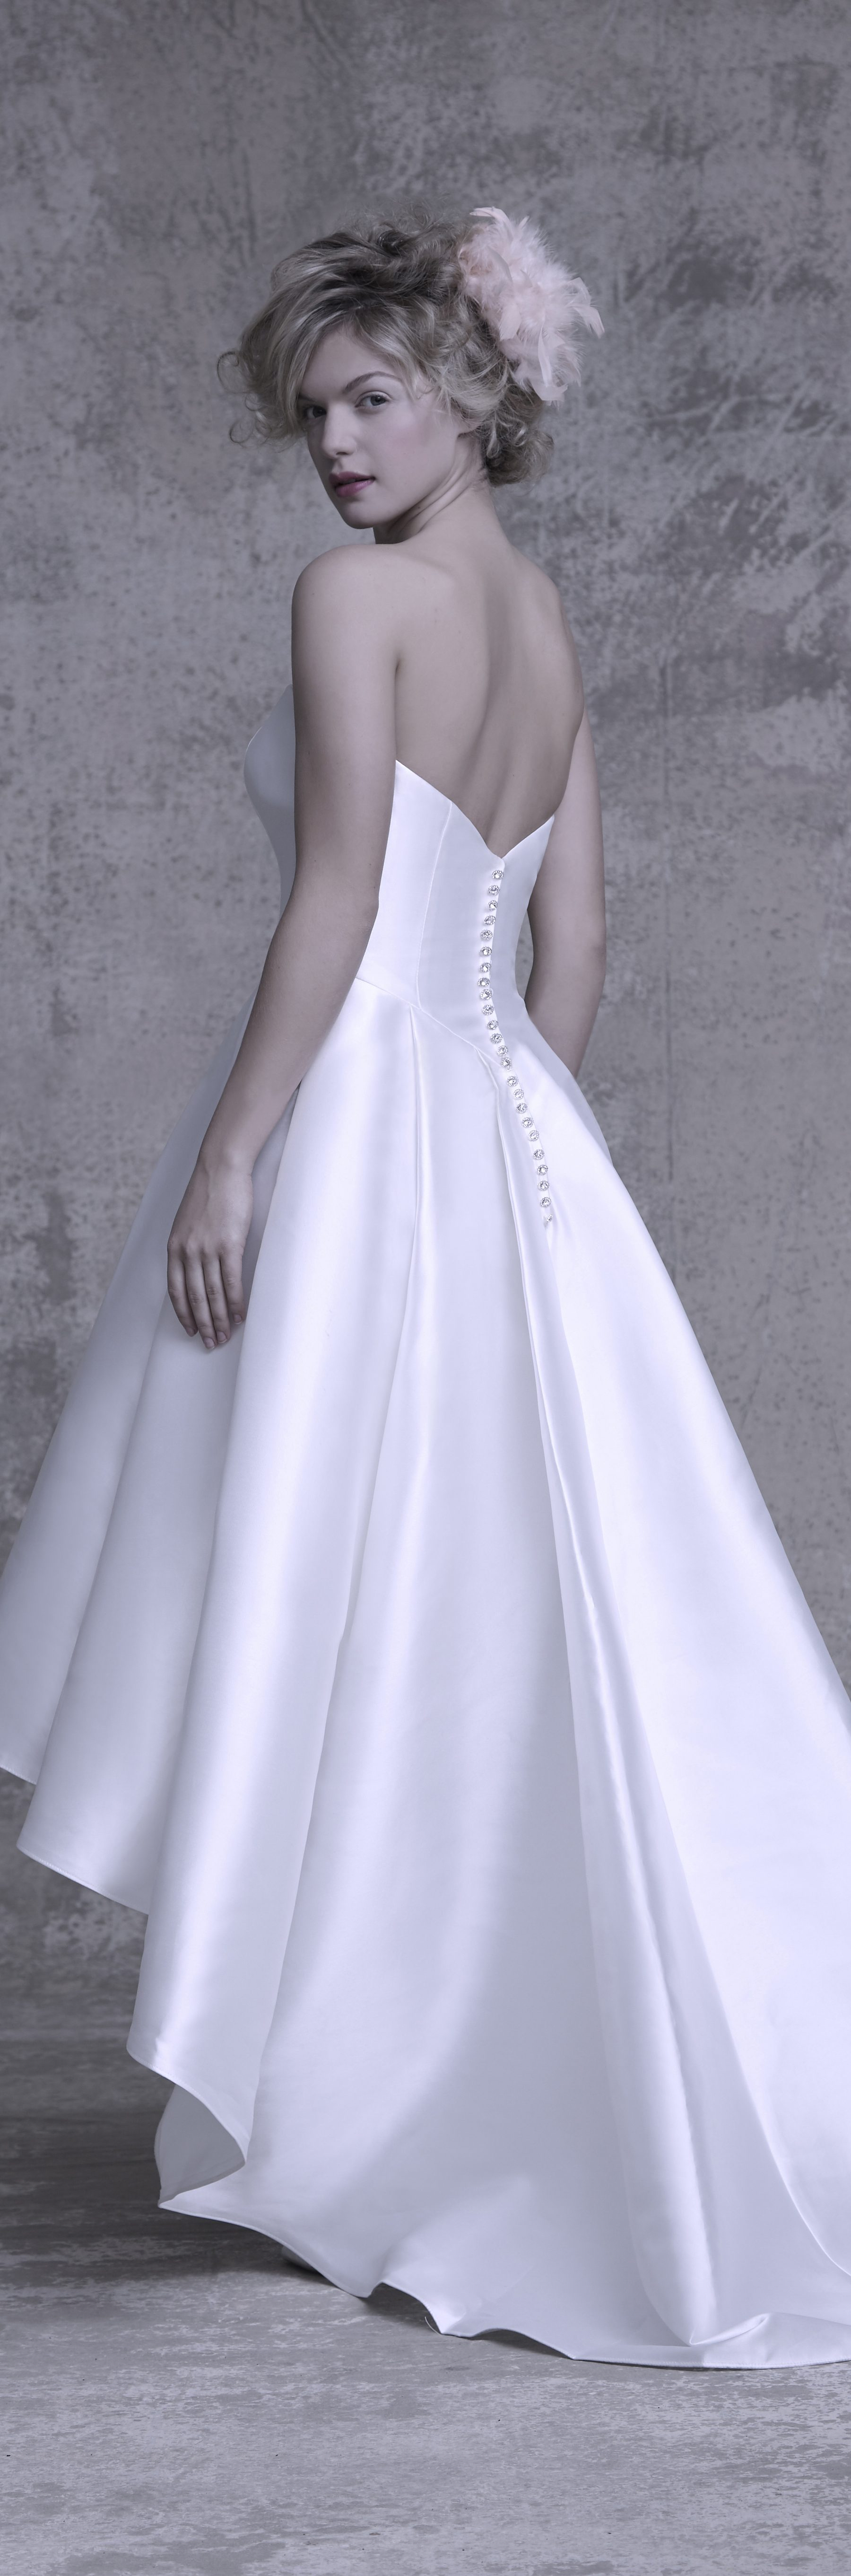 Satin Wedding Dresses With Corset Back Ficts